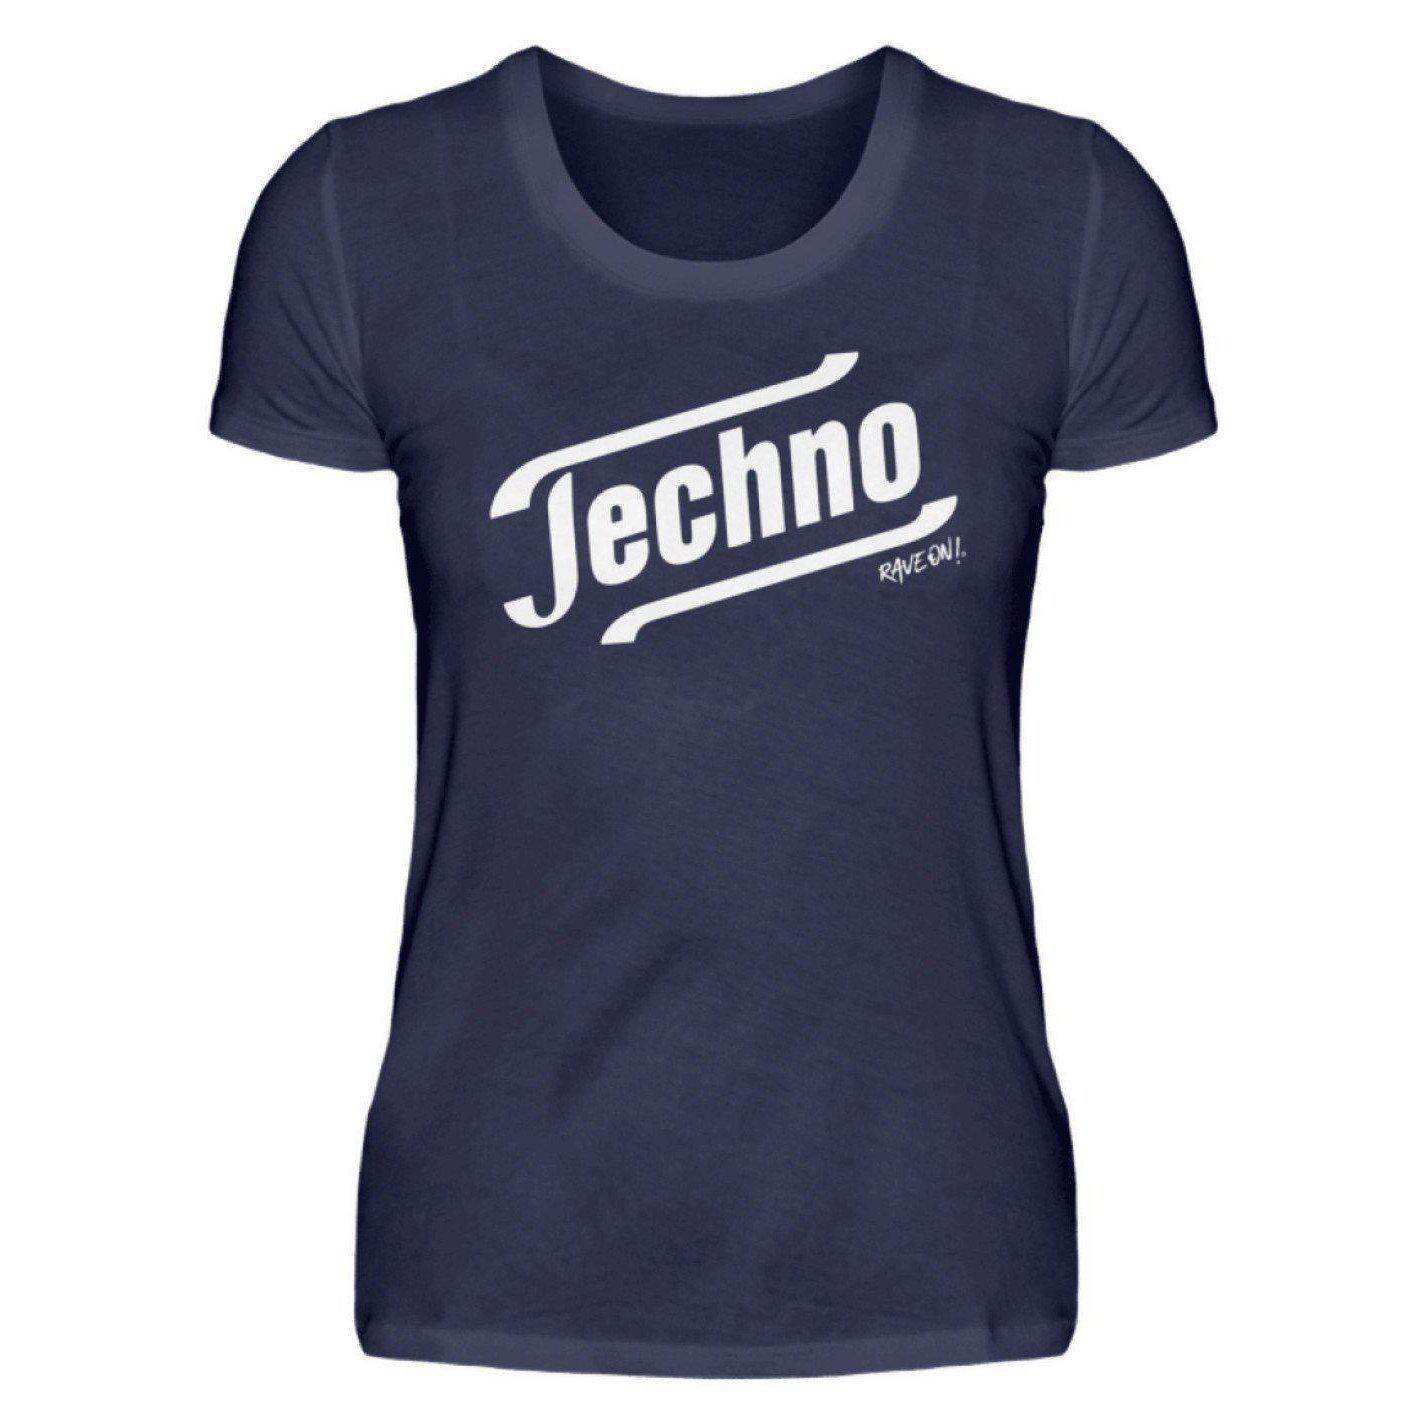 Techno - Tempo Rave On!® T-Shirt - Damenshirt-Damen Basic T-Shirt-Dunkel-Blau-S-Rave-On! I www.rave-on.shop I Deine Rave & Techno Szene Shop I apparel, brand, Design - Techno - Tempo Rave On!® T-Shirt, font, Funny, i heart raves, meme, music, on, On!®, rave, rave apparel, rave clothes, rave clothing, rave fashion, rave gear, rave on, Rave On!®, rave shop, rave t shirt, rave wear, raver, techno, techno apparel, Tempo, ® - Sexy Festival Streetwear , Clubwear & Raver Style